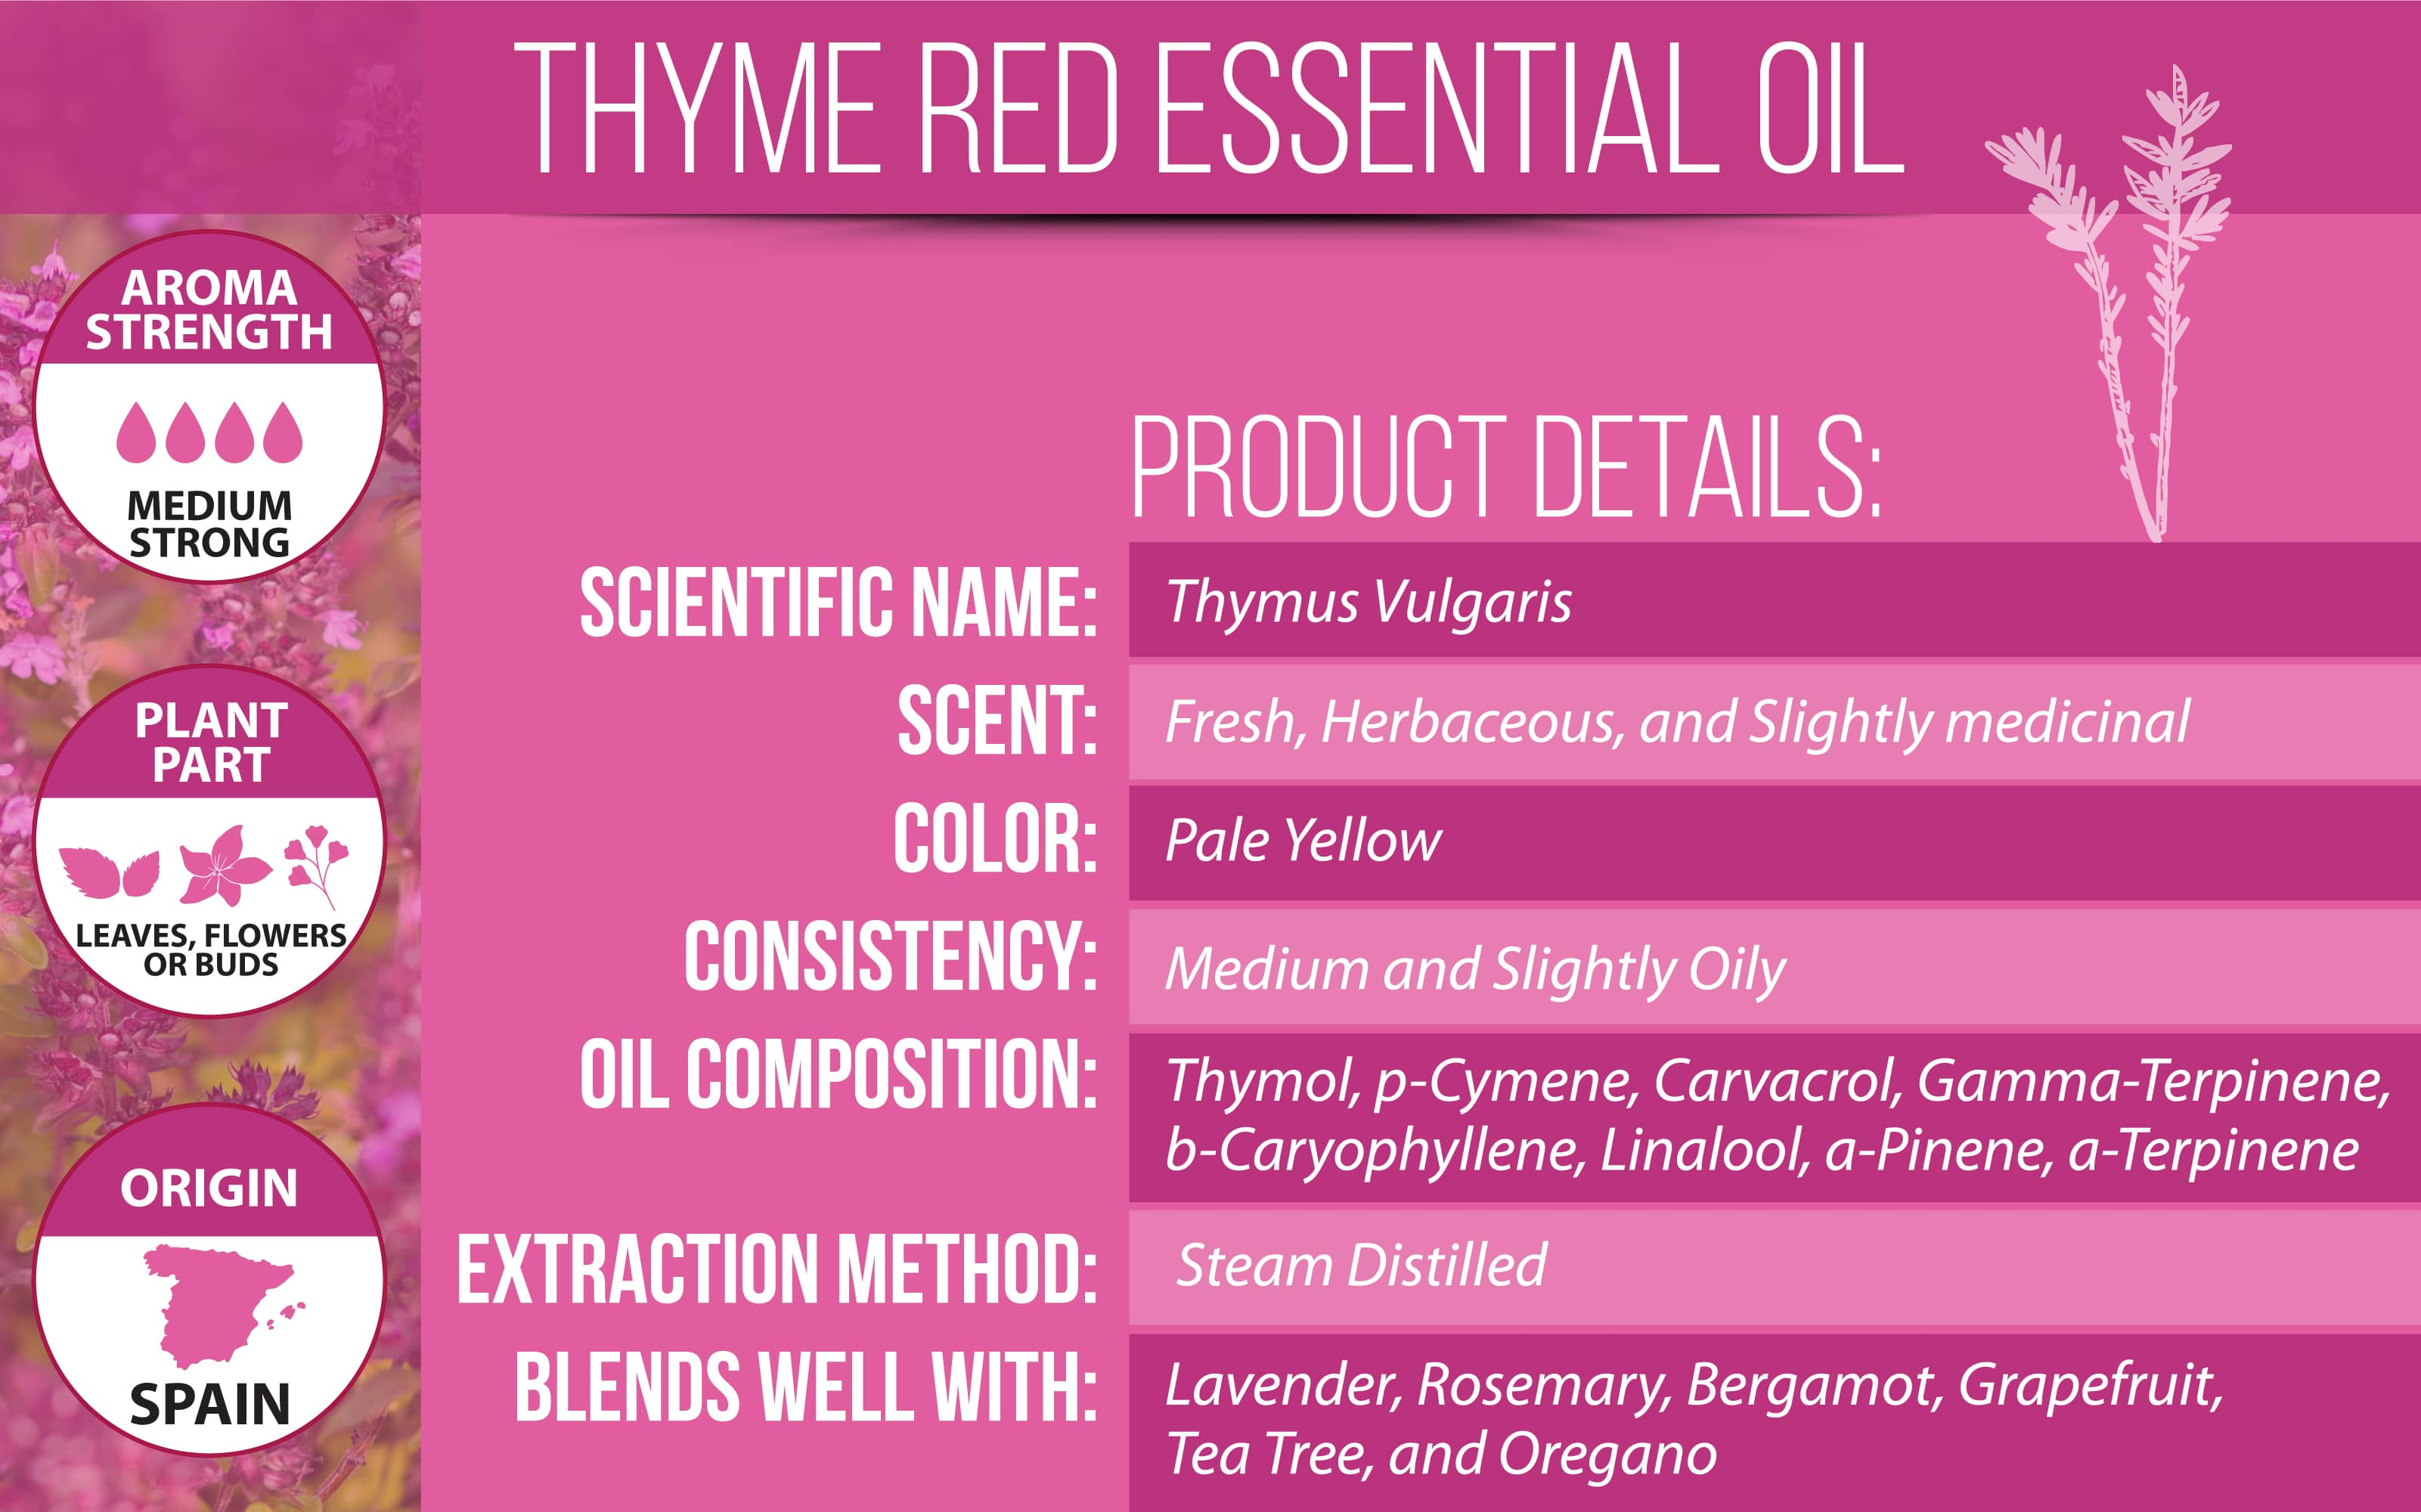 red thyme essential oil product details